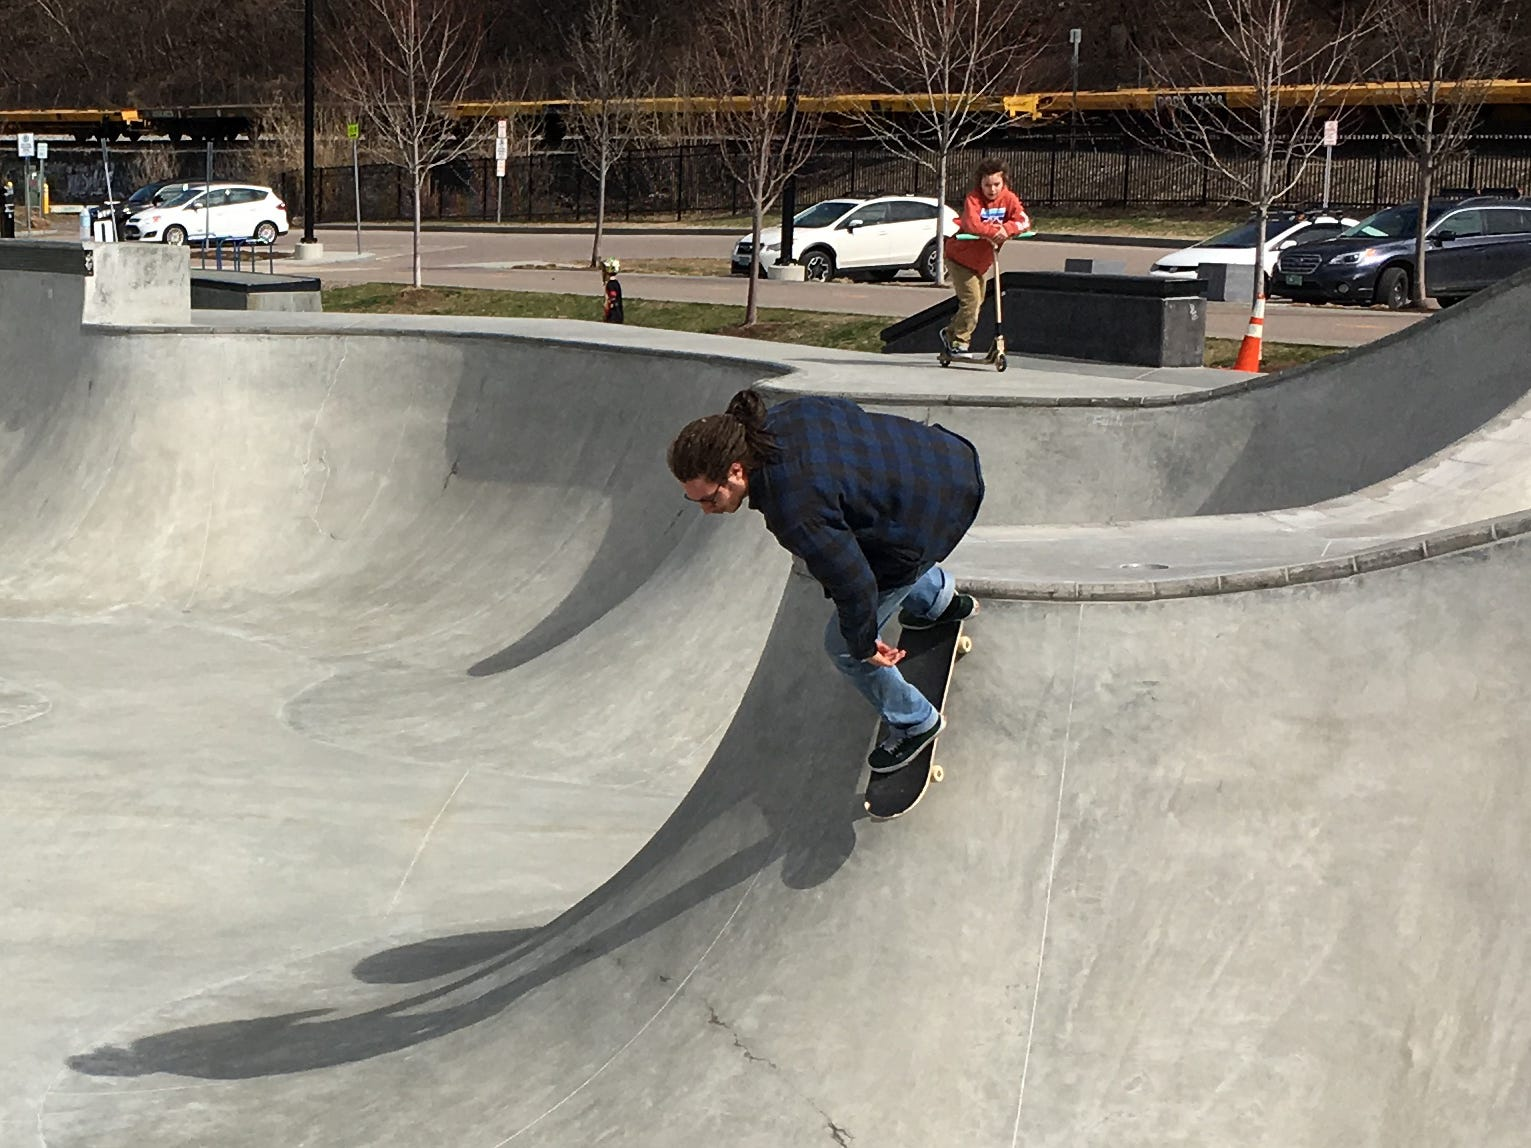 A skateboarder launches into the Andy A_Dog Williams Skatepark in Burlington on Sunday, April 14, 2019.